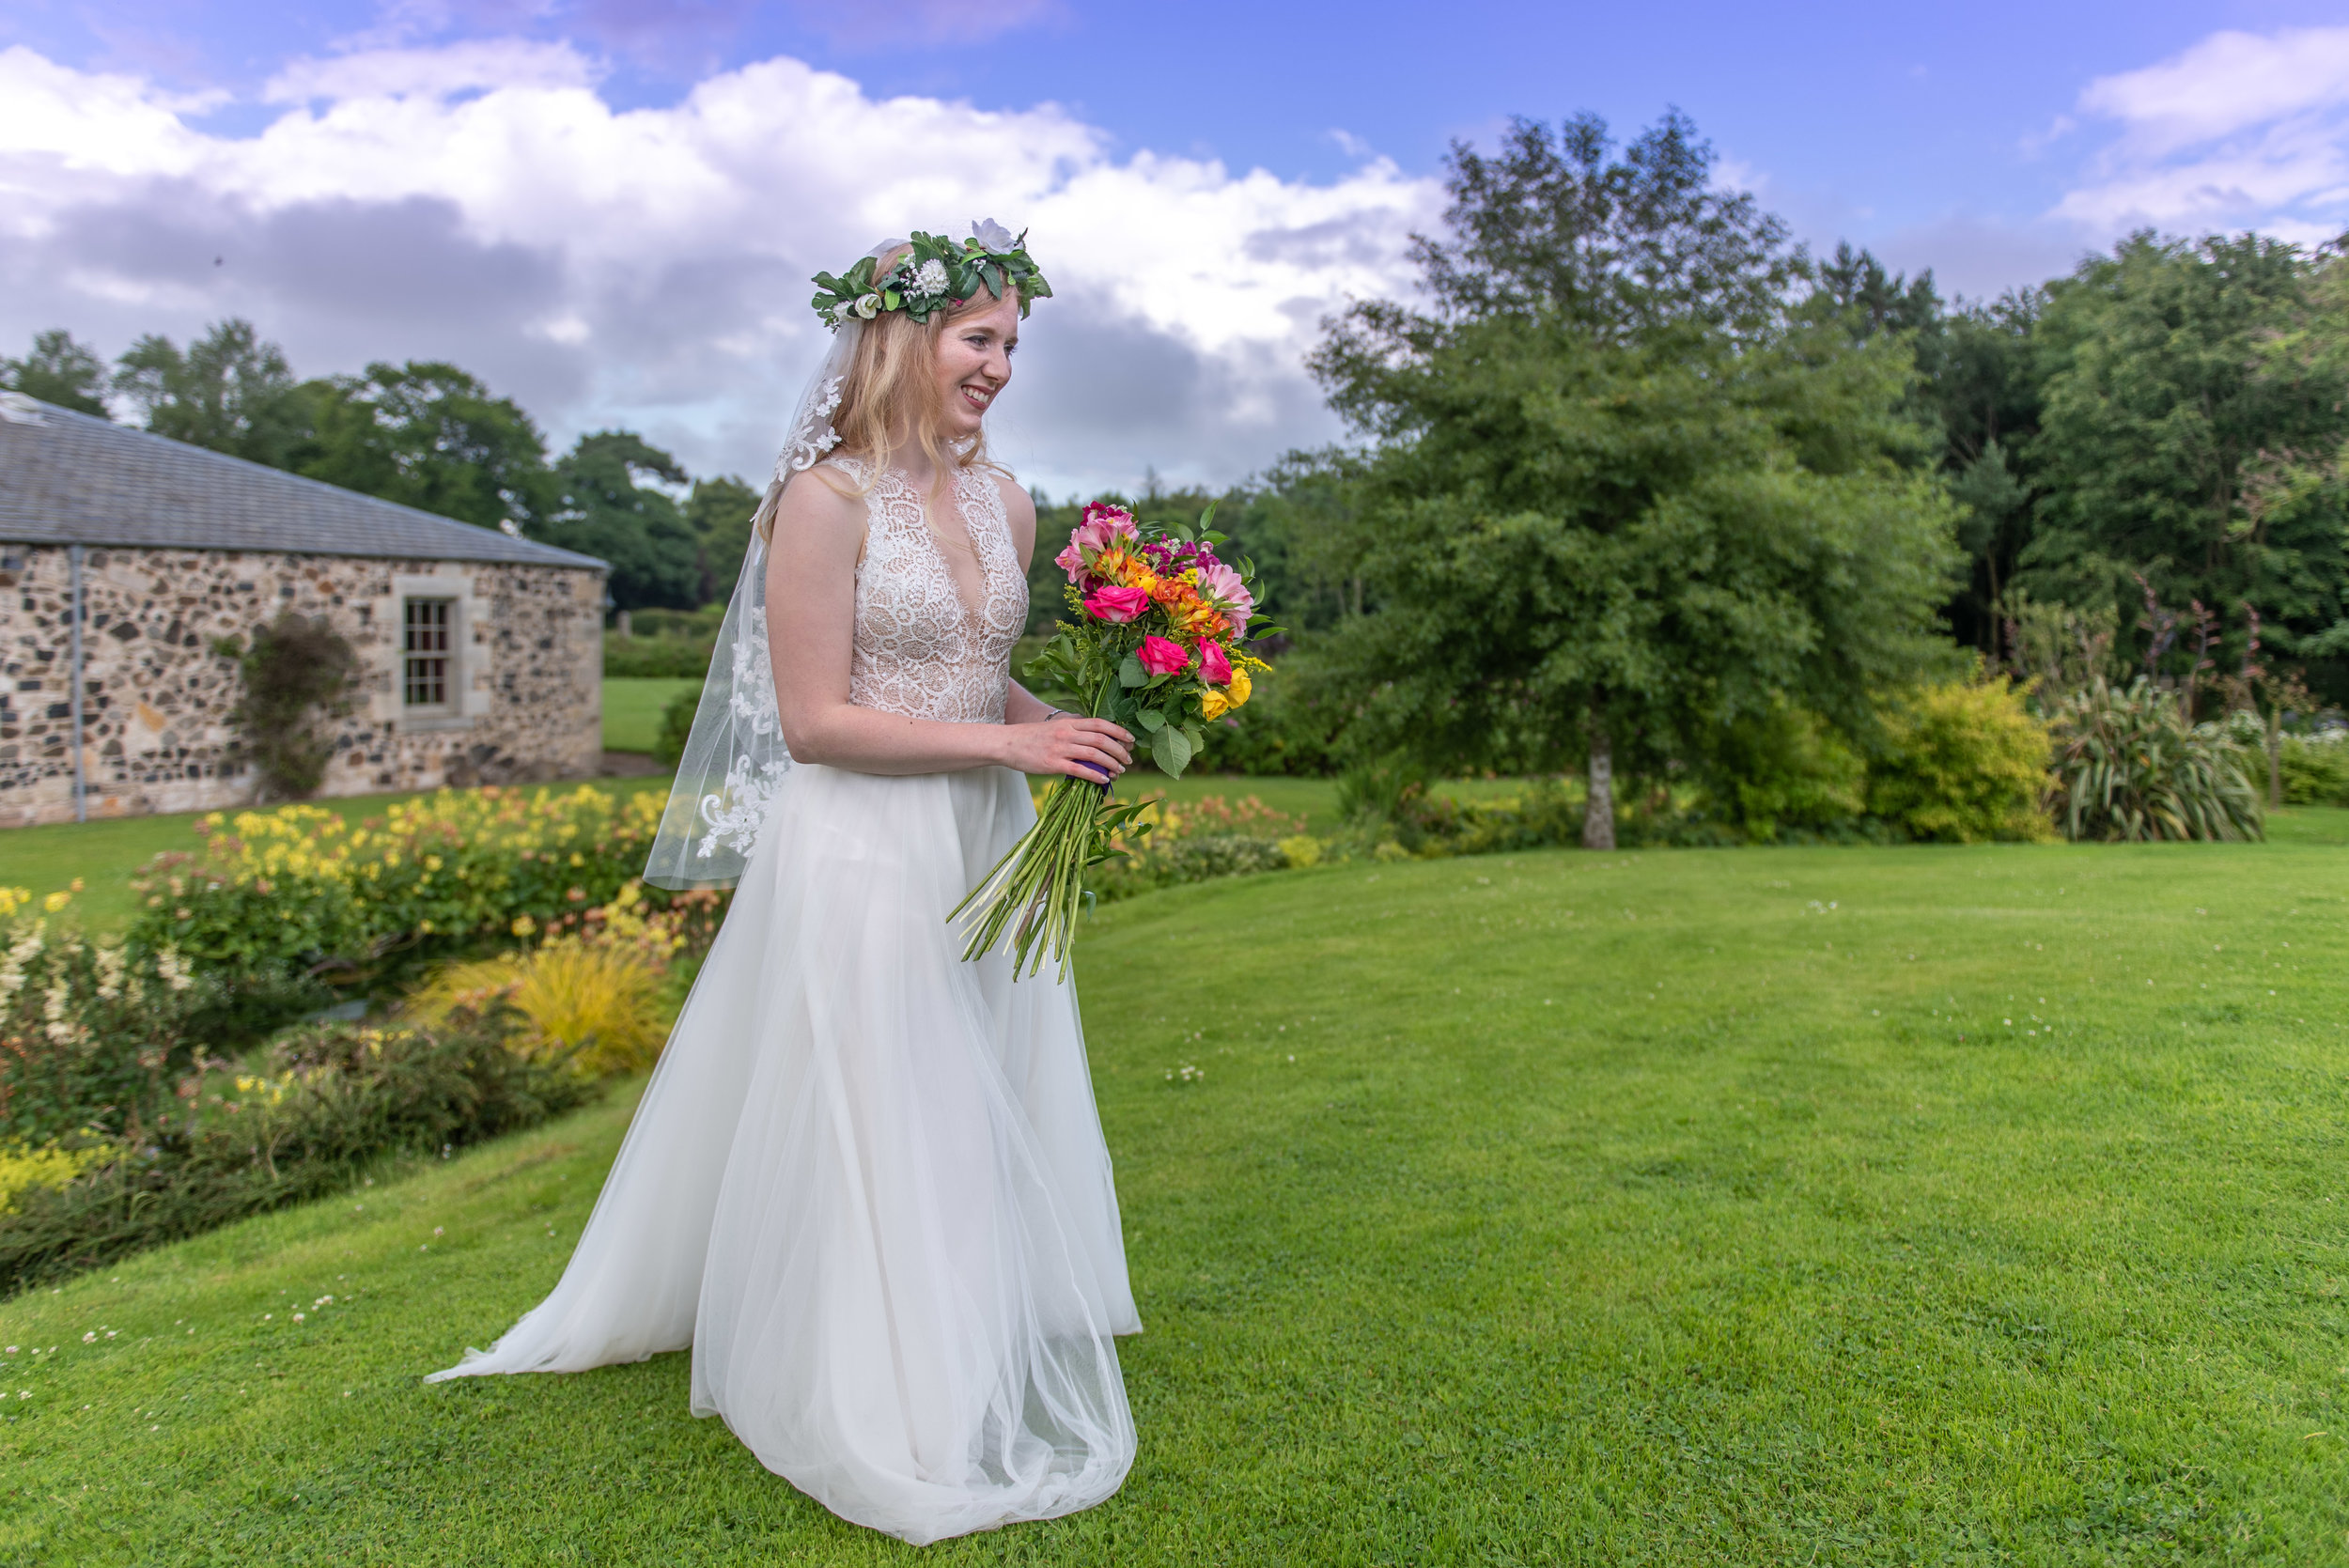 Scottish documentary wedding photographer